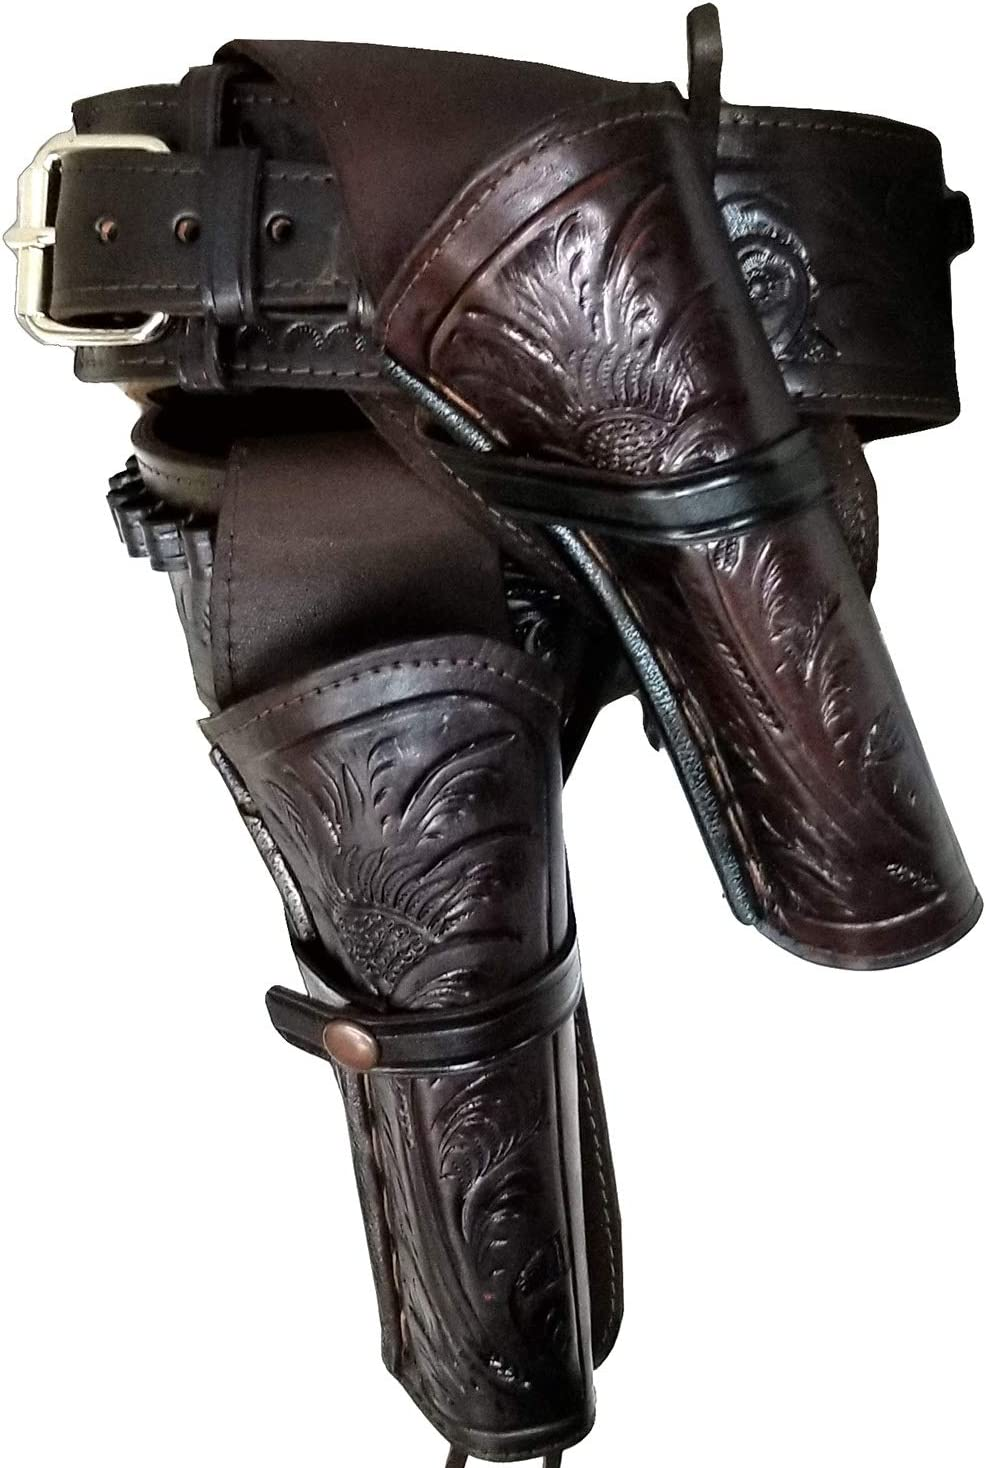 Modestone 44/45 High Ride RIGHT Cross Draw Double Holster Gun カウボーイベルト Rig Leather